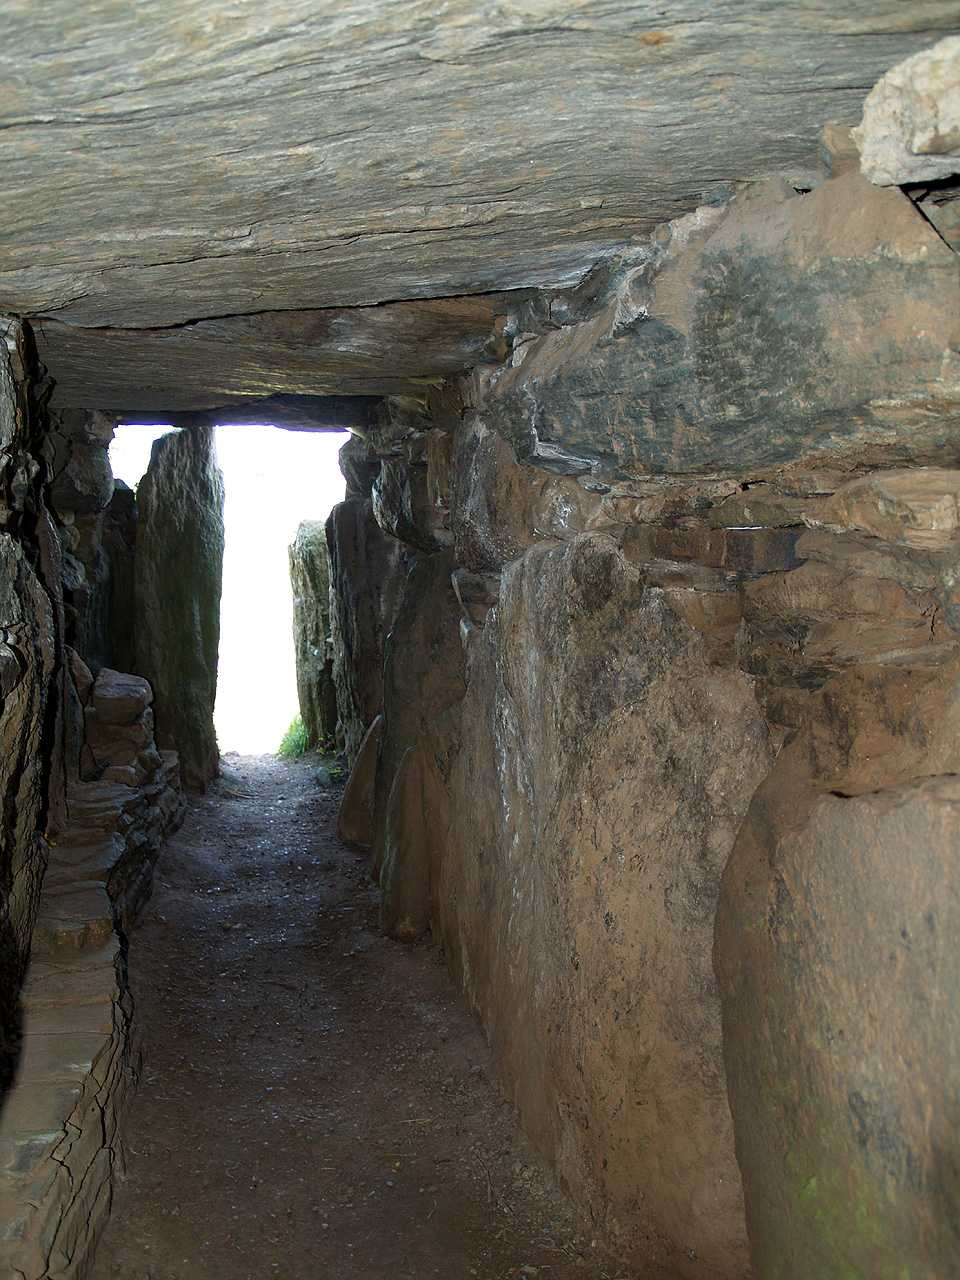 Anglesey, Llanddaniel, Bryn Celli Ddu, Looking back to the entance from the internal hall